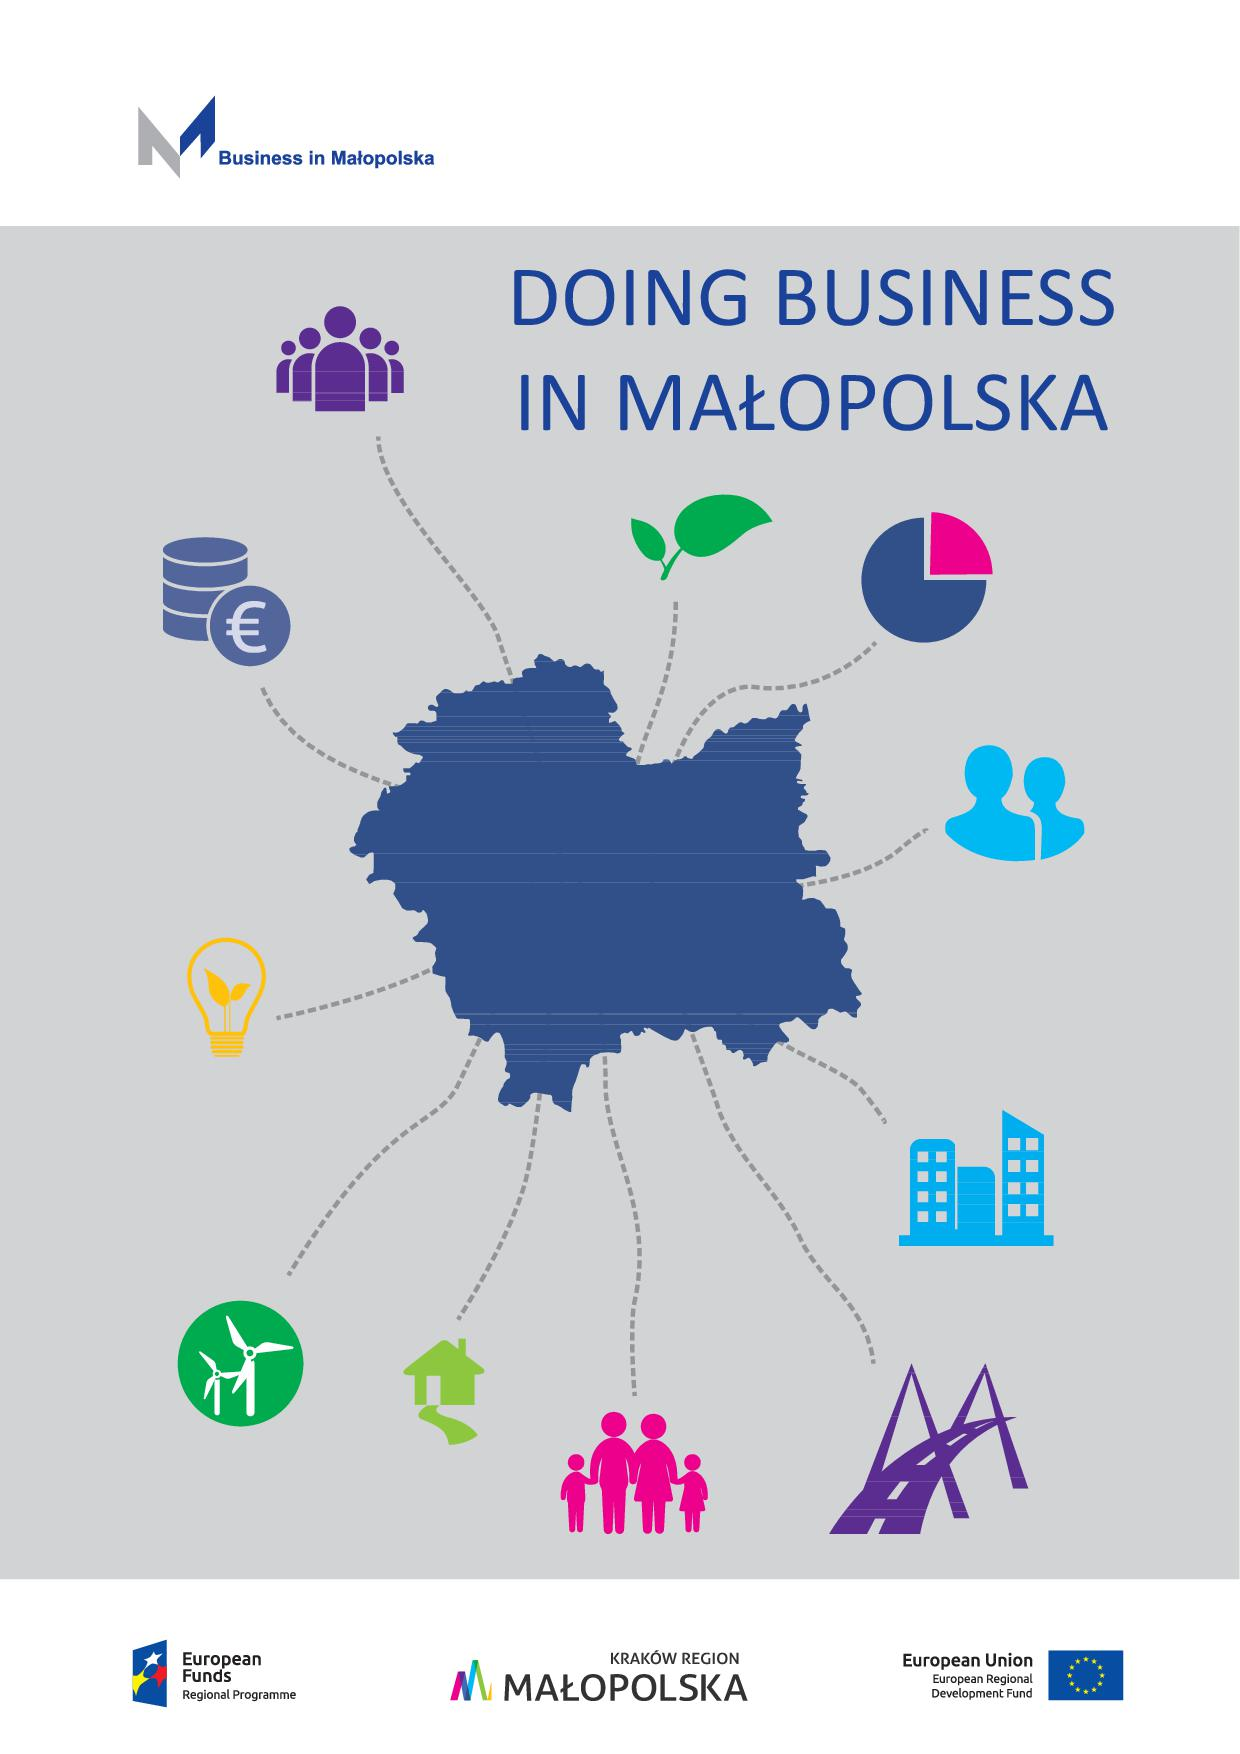 Doing business in Małopolska